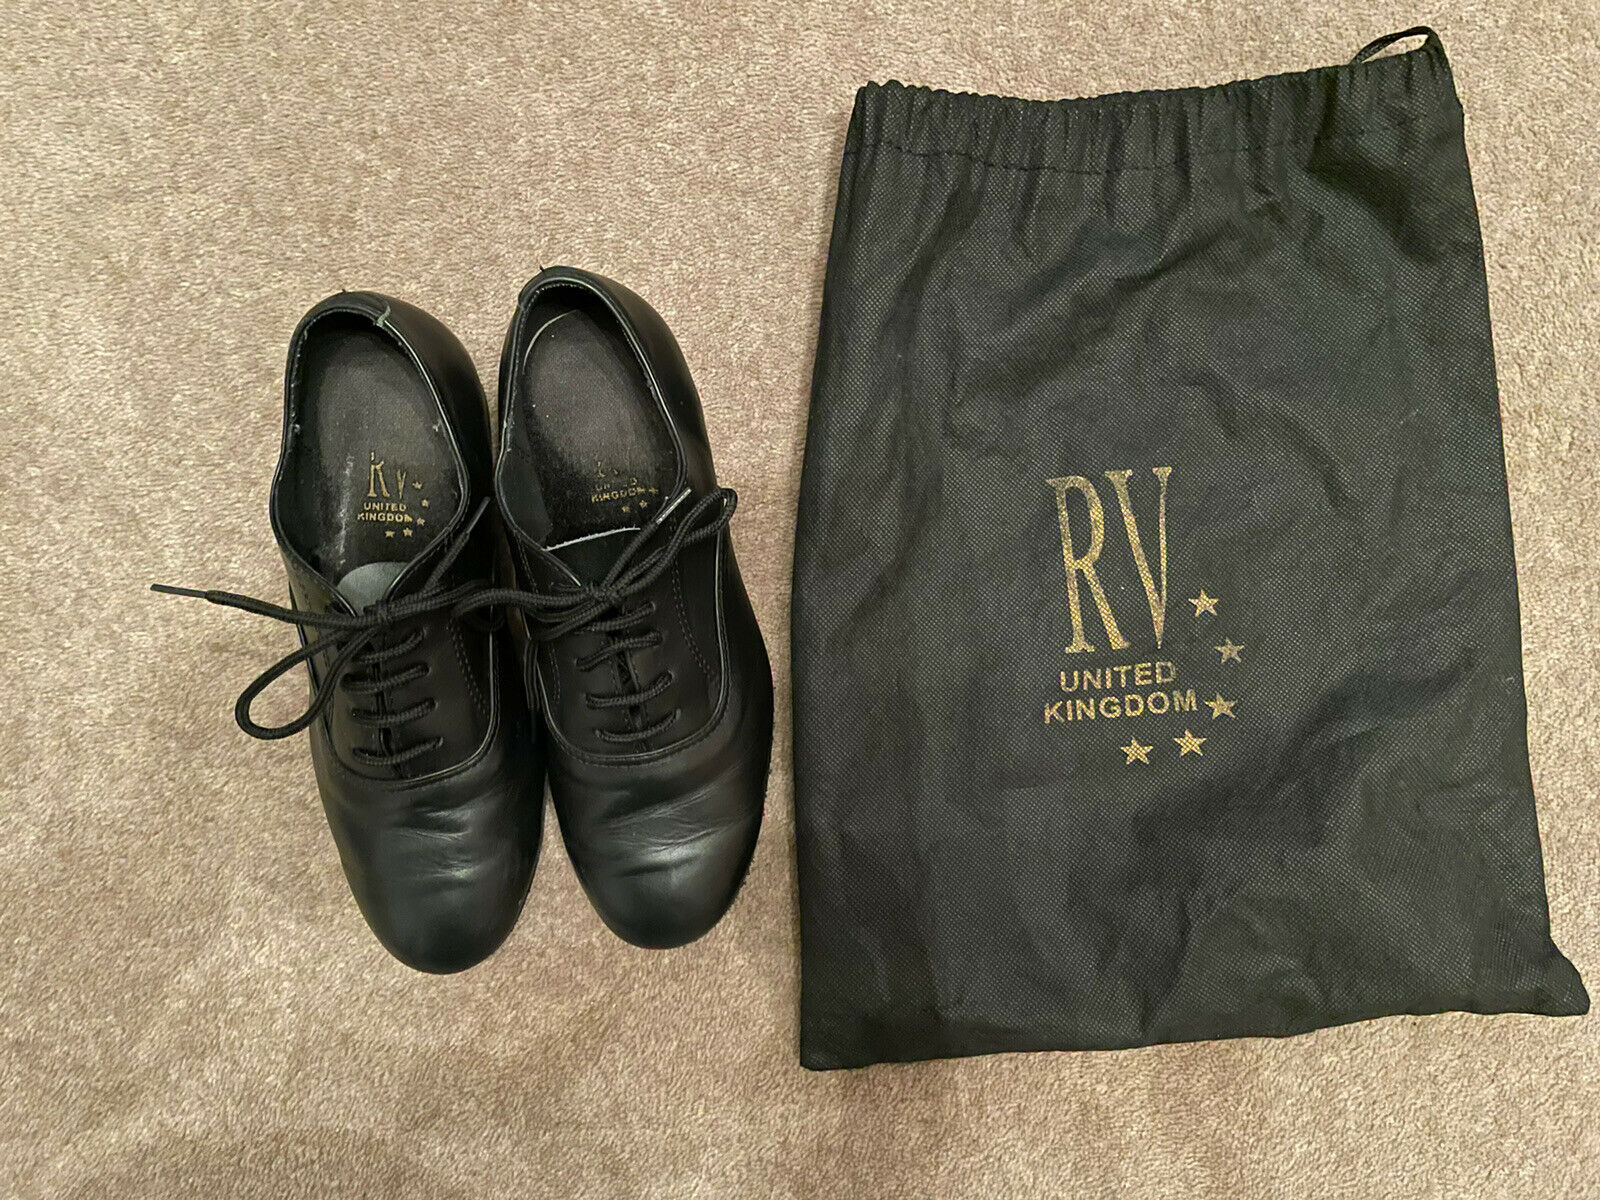 Roche Valley Boys Leather Ballroom Latin Dance Shoes Size 3 - Excellent cond.